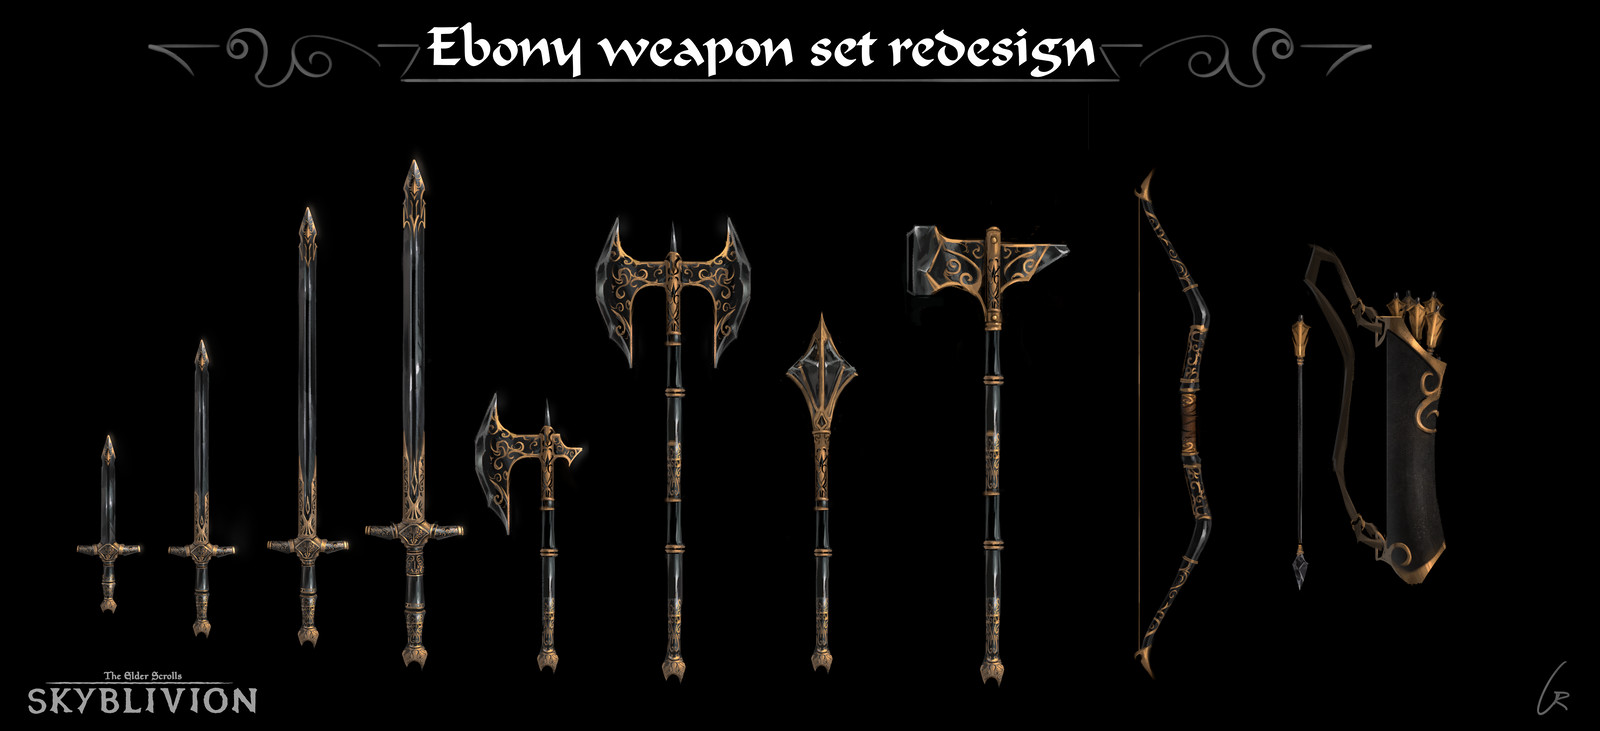 Skyblivion - Ebony weapons redesign